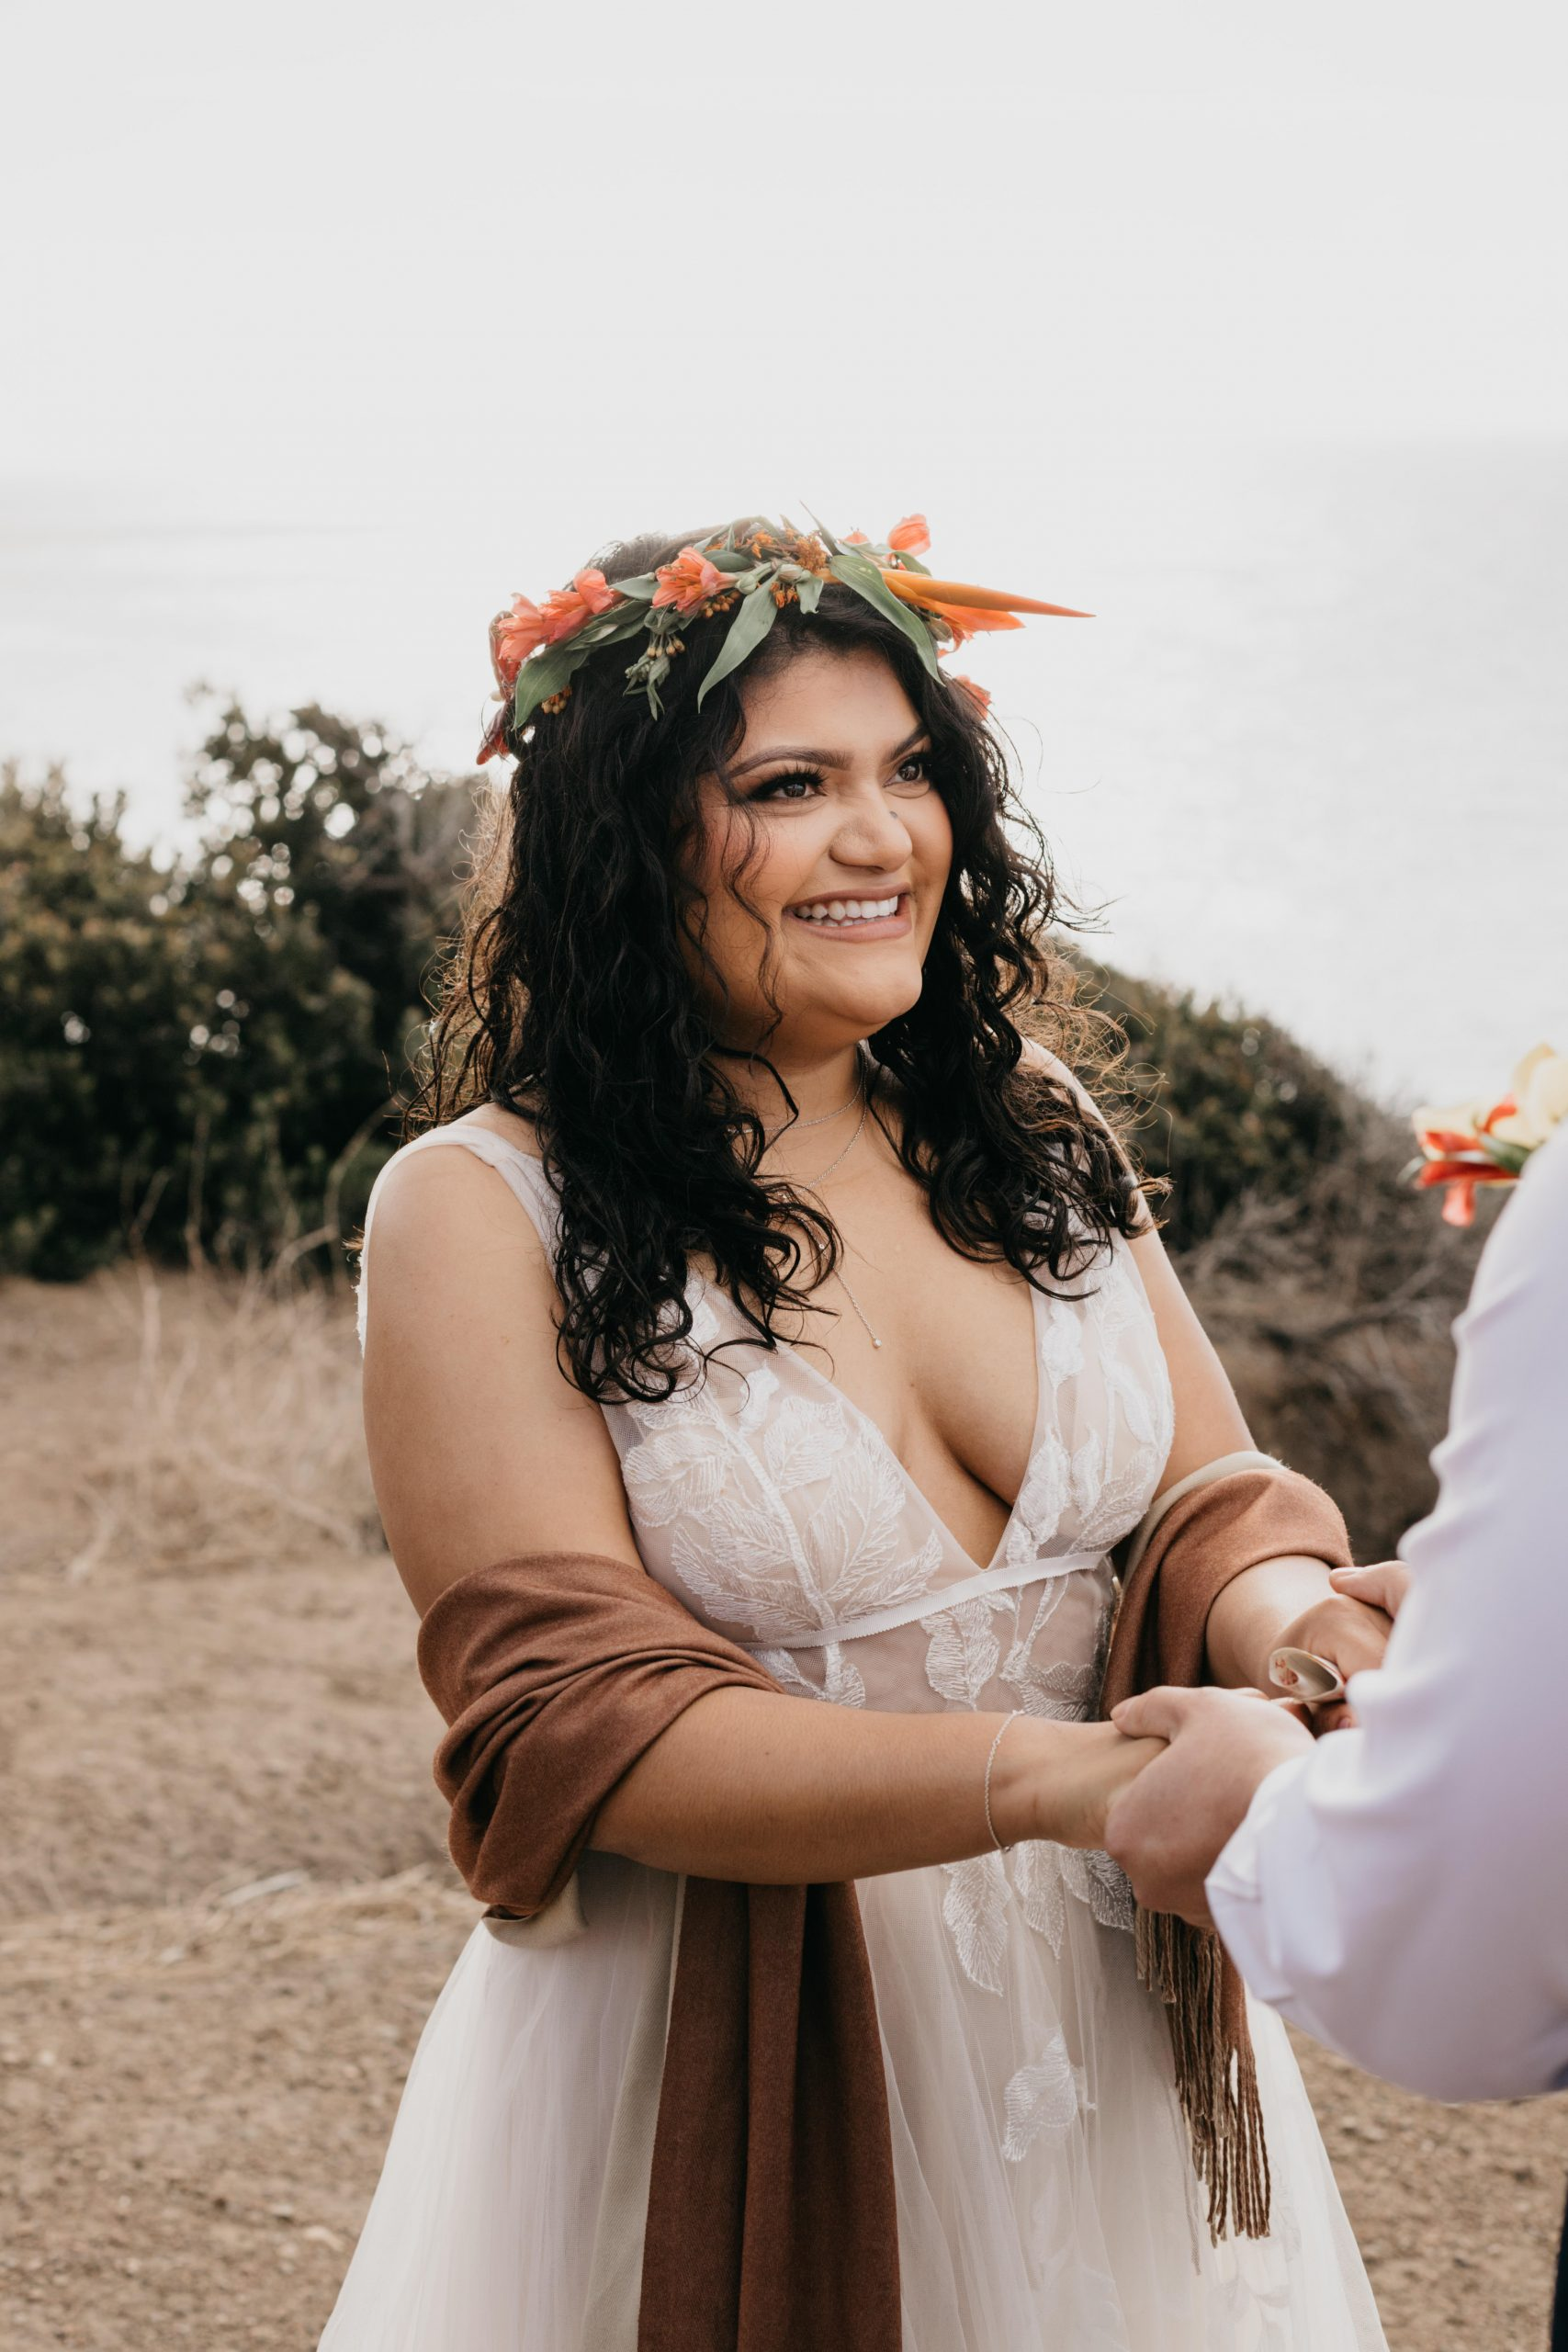 Bride looking at her husband during elopement ceremony, image by Fatima Elreda Photo